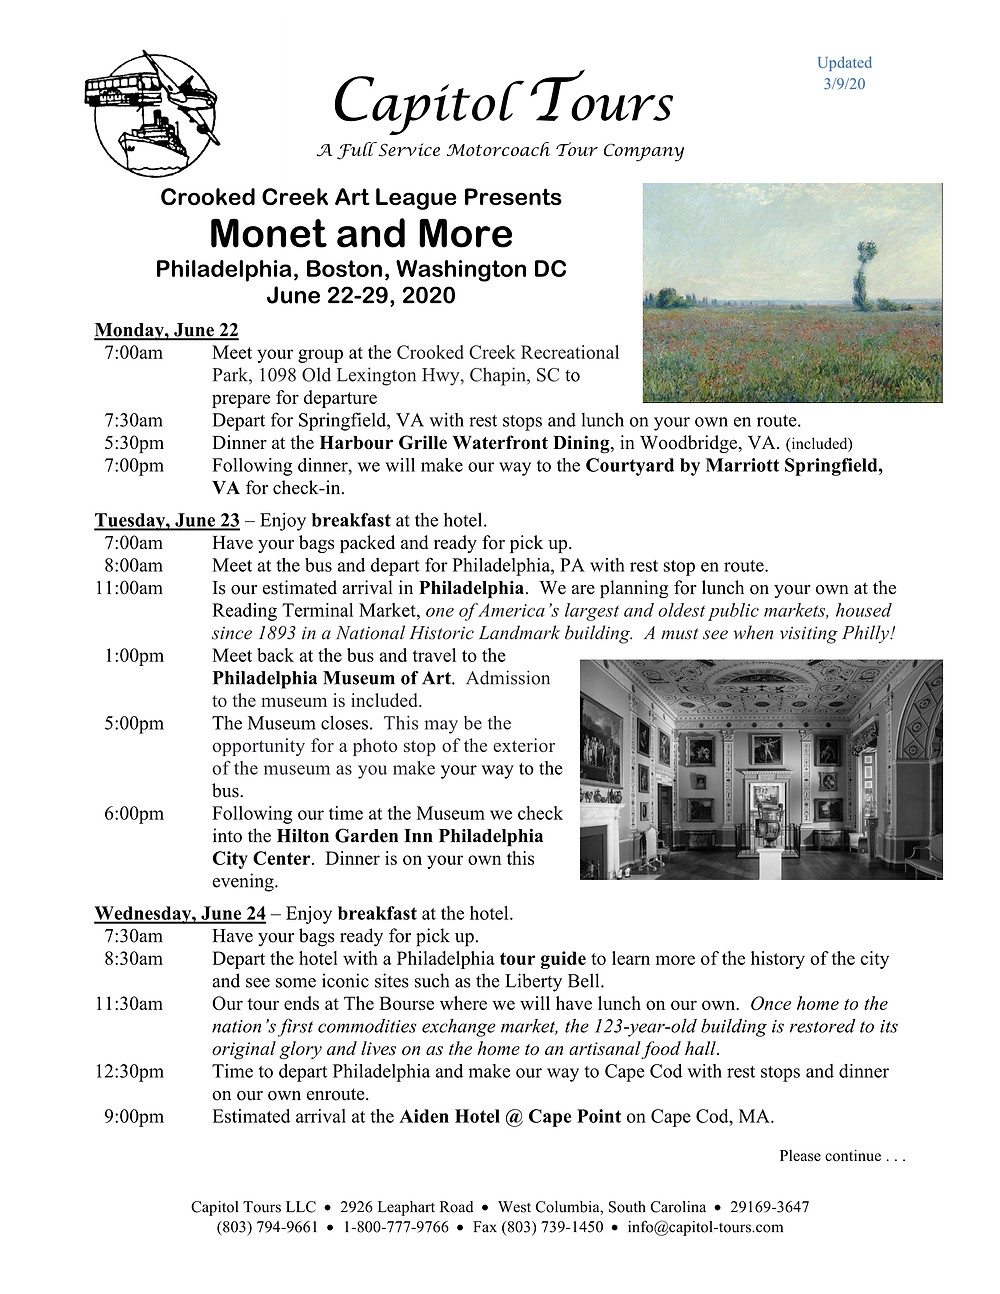 Monet and More Tour - Page 1